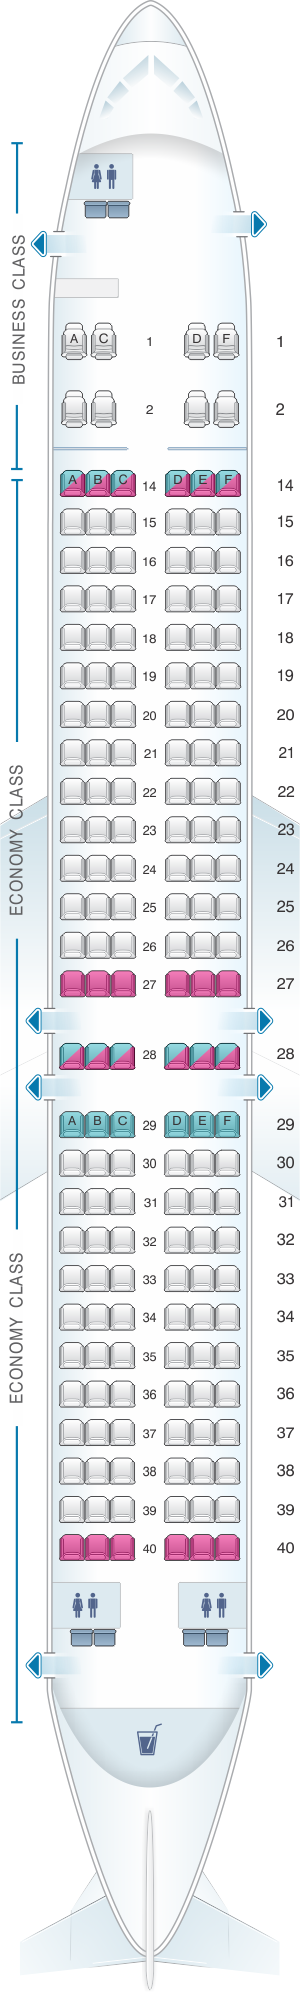 Seat map for Fiji Airways Boeing B737 MAX 8